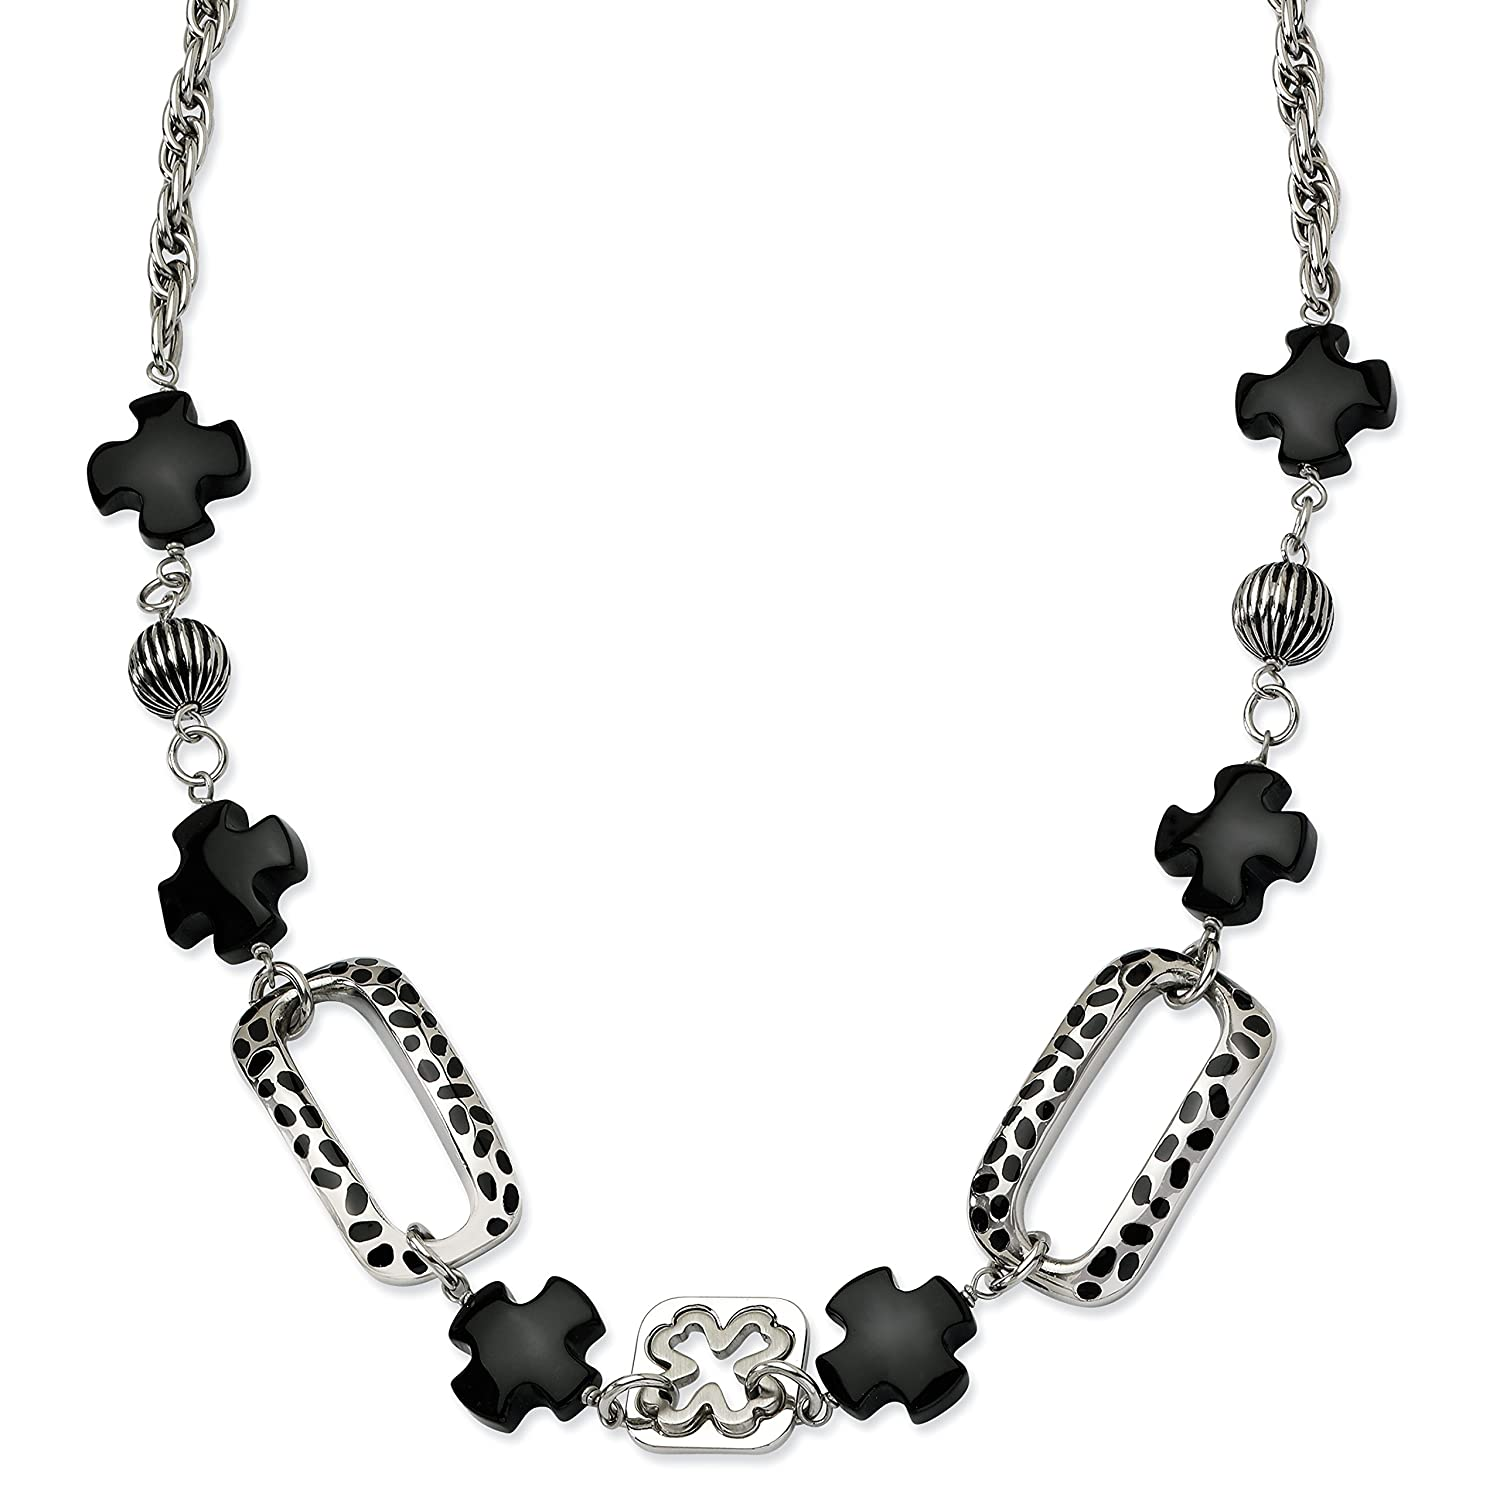 Necklace Stainless Steel Black Agate /& Resin 24 with 1 ext